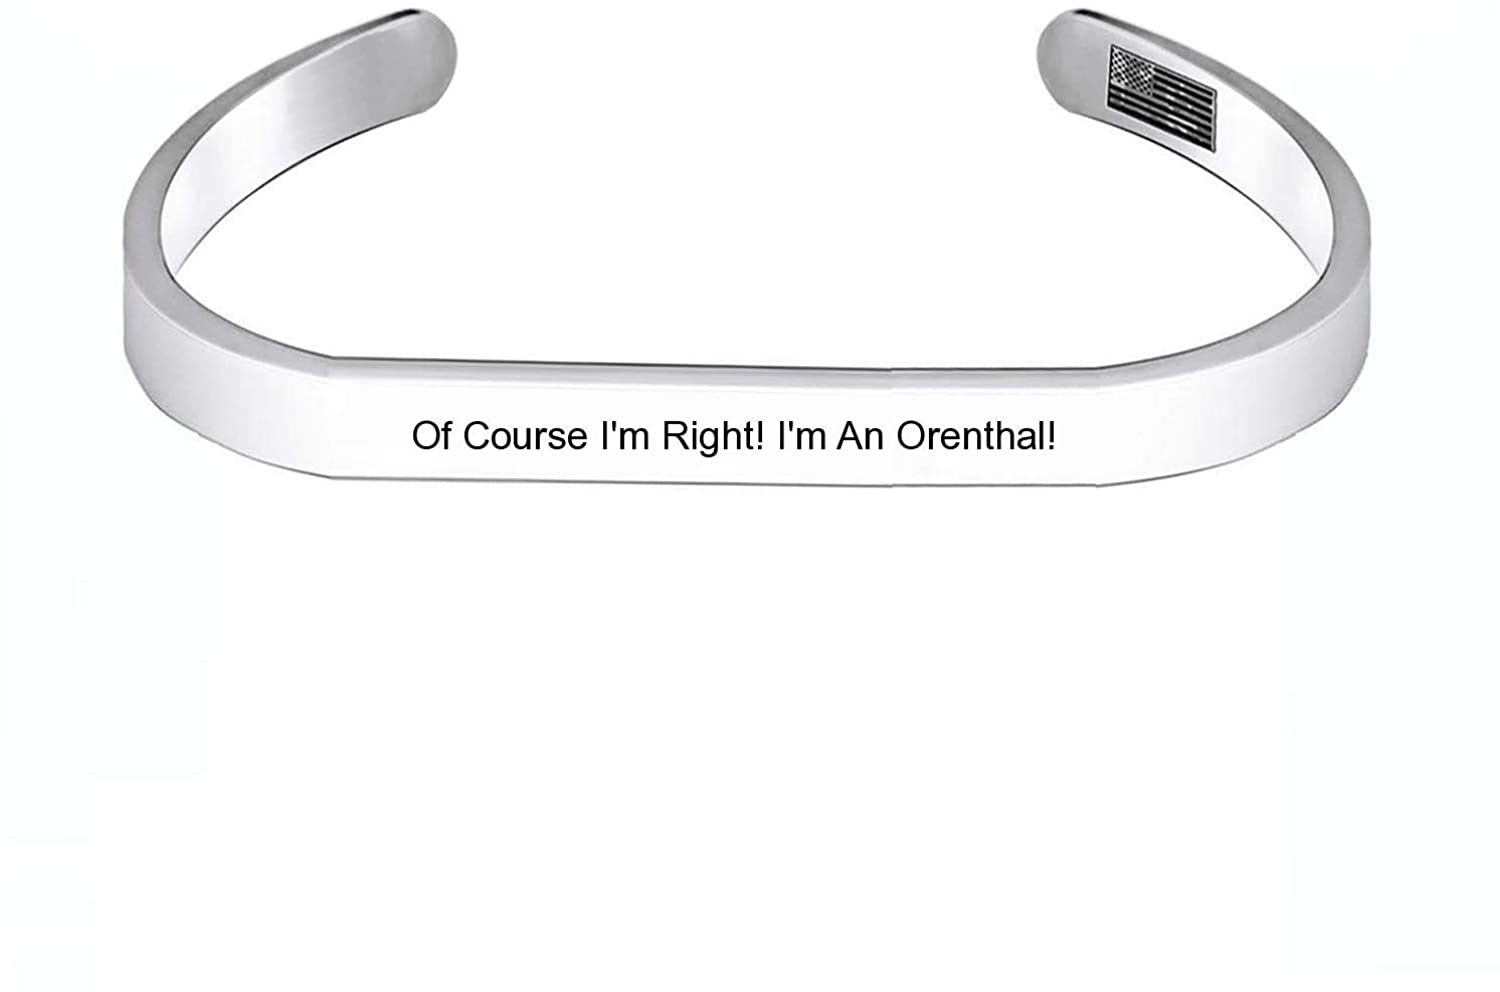 Enhome Cuff Bracelets of Course I'm Right! I'm an Orenthal! for Women Birthday Gifts for Her Silver Cuff Bangle American Flag Bracelet